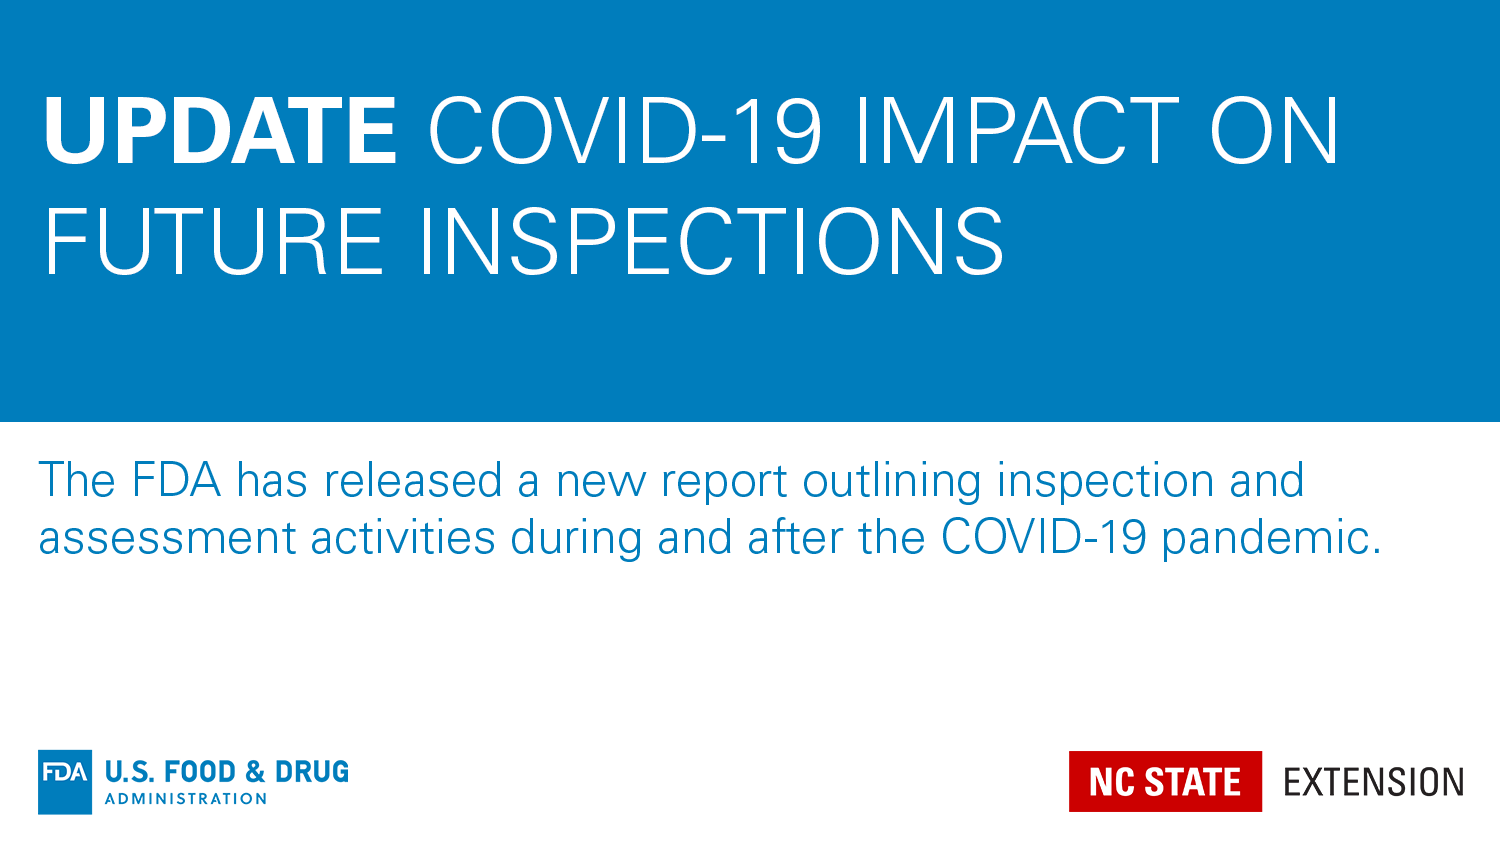 COVID-19 Impacts on future inspections banner image